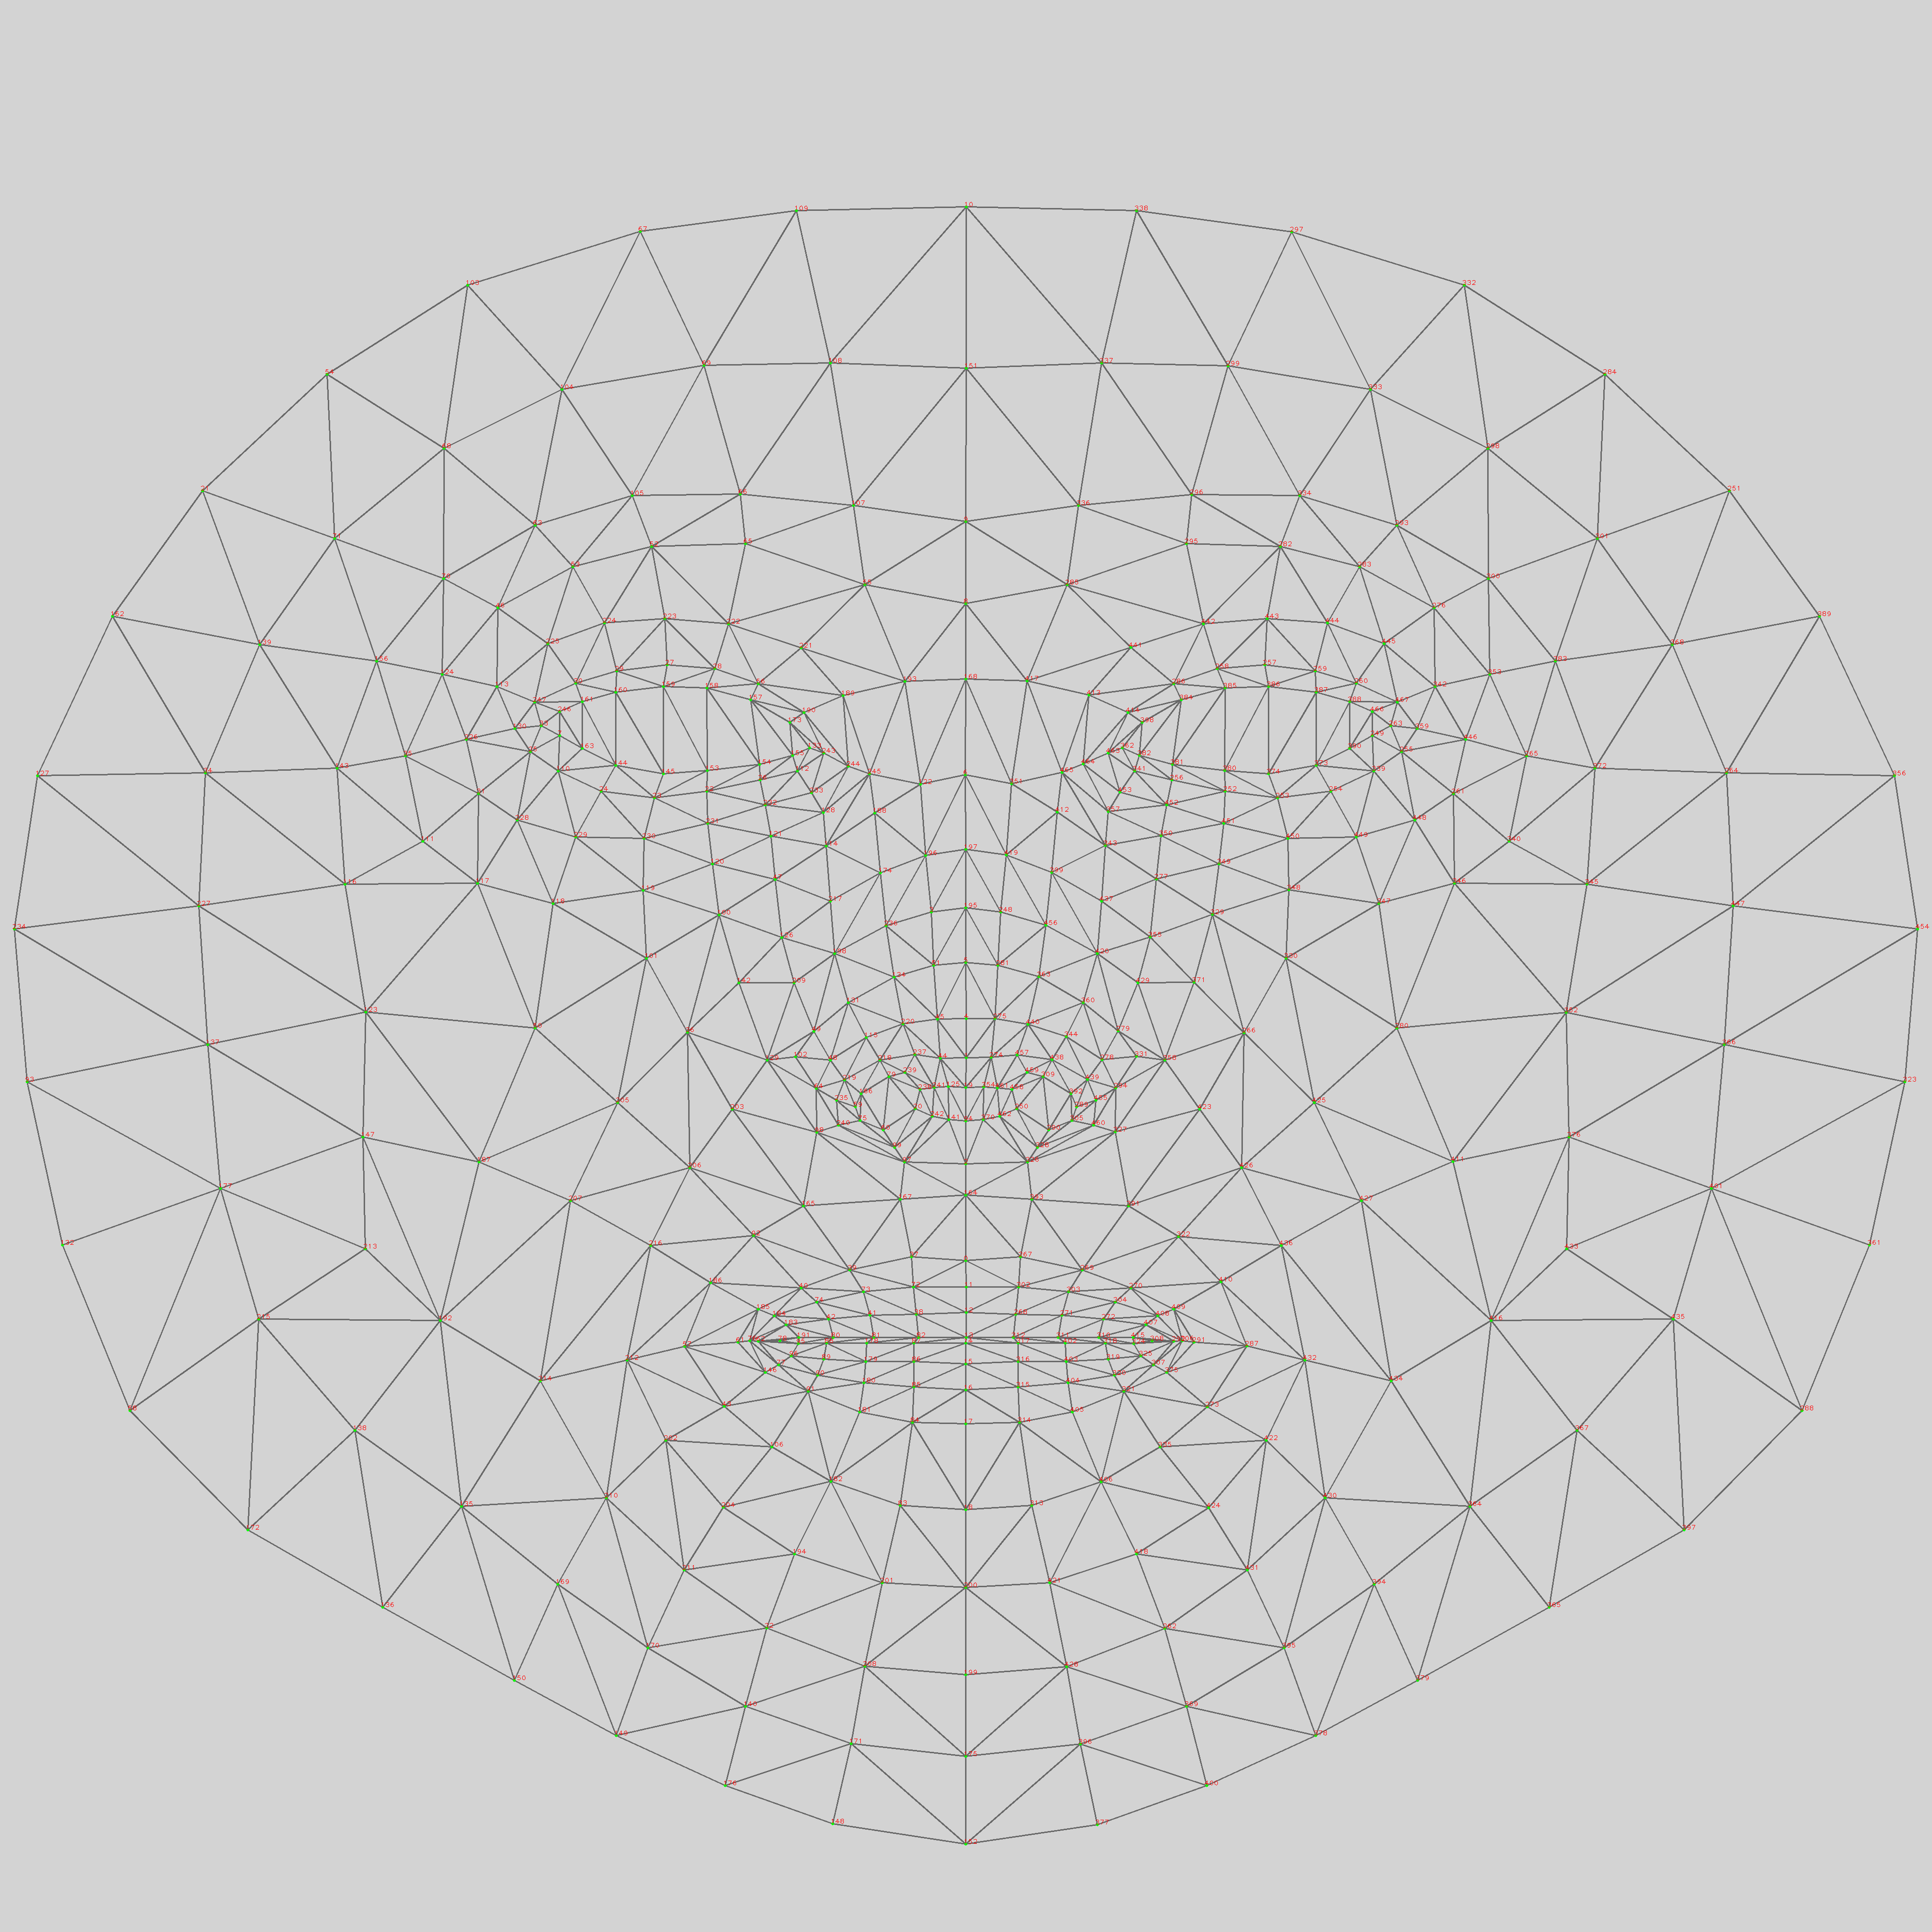 Canonical face model